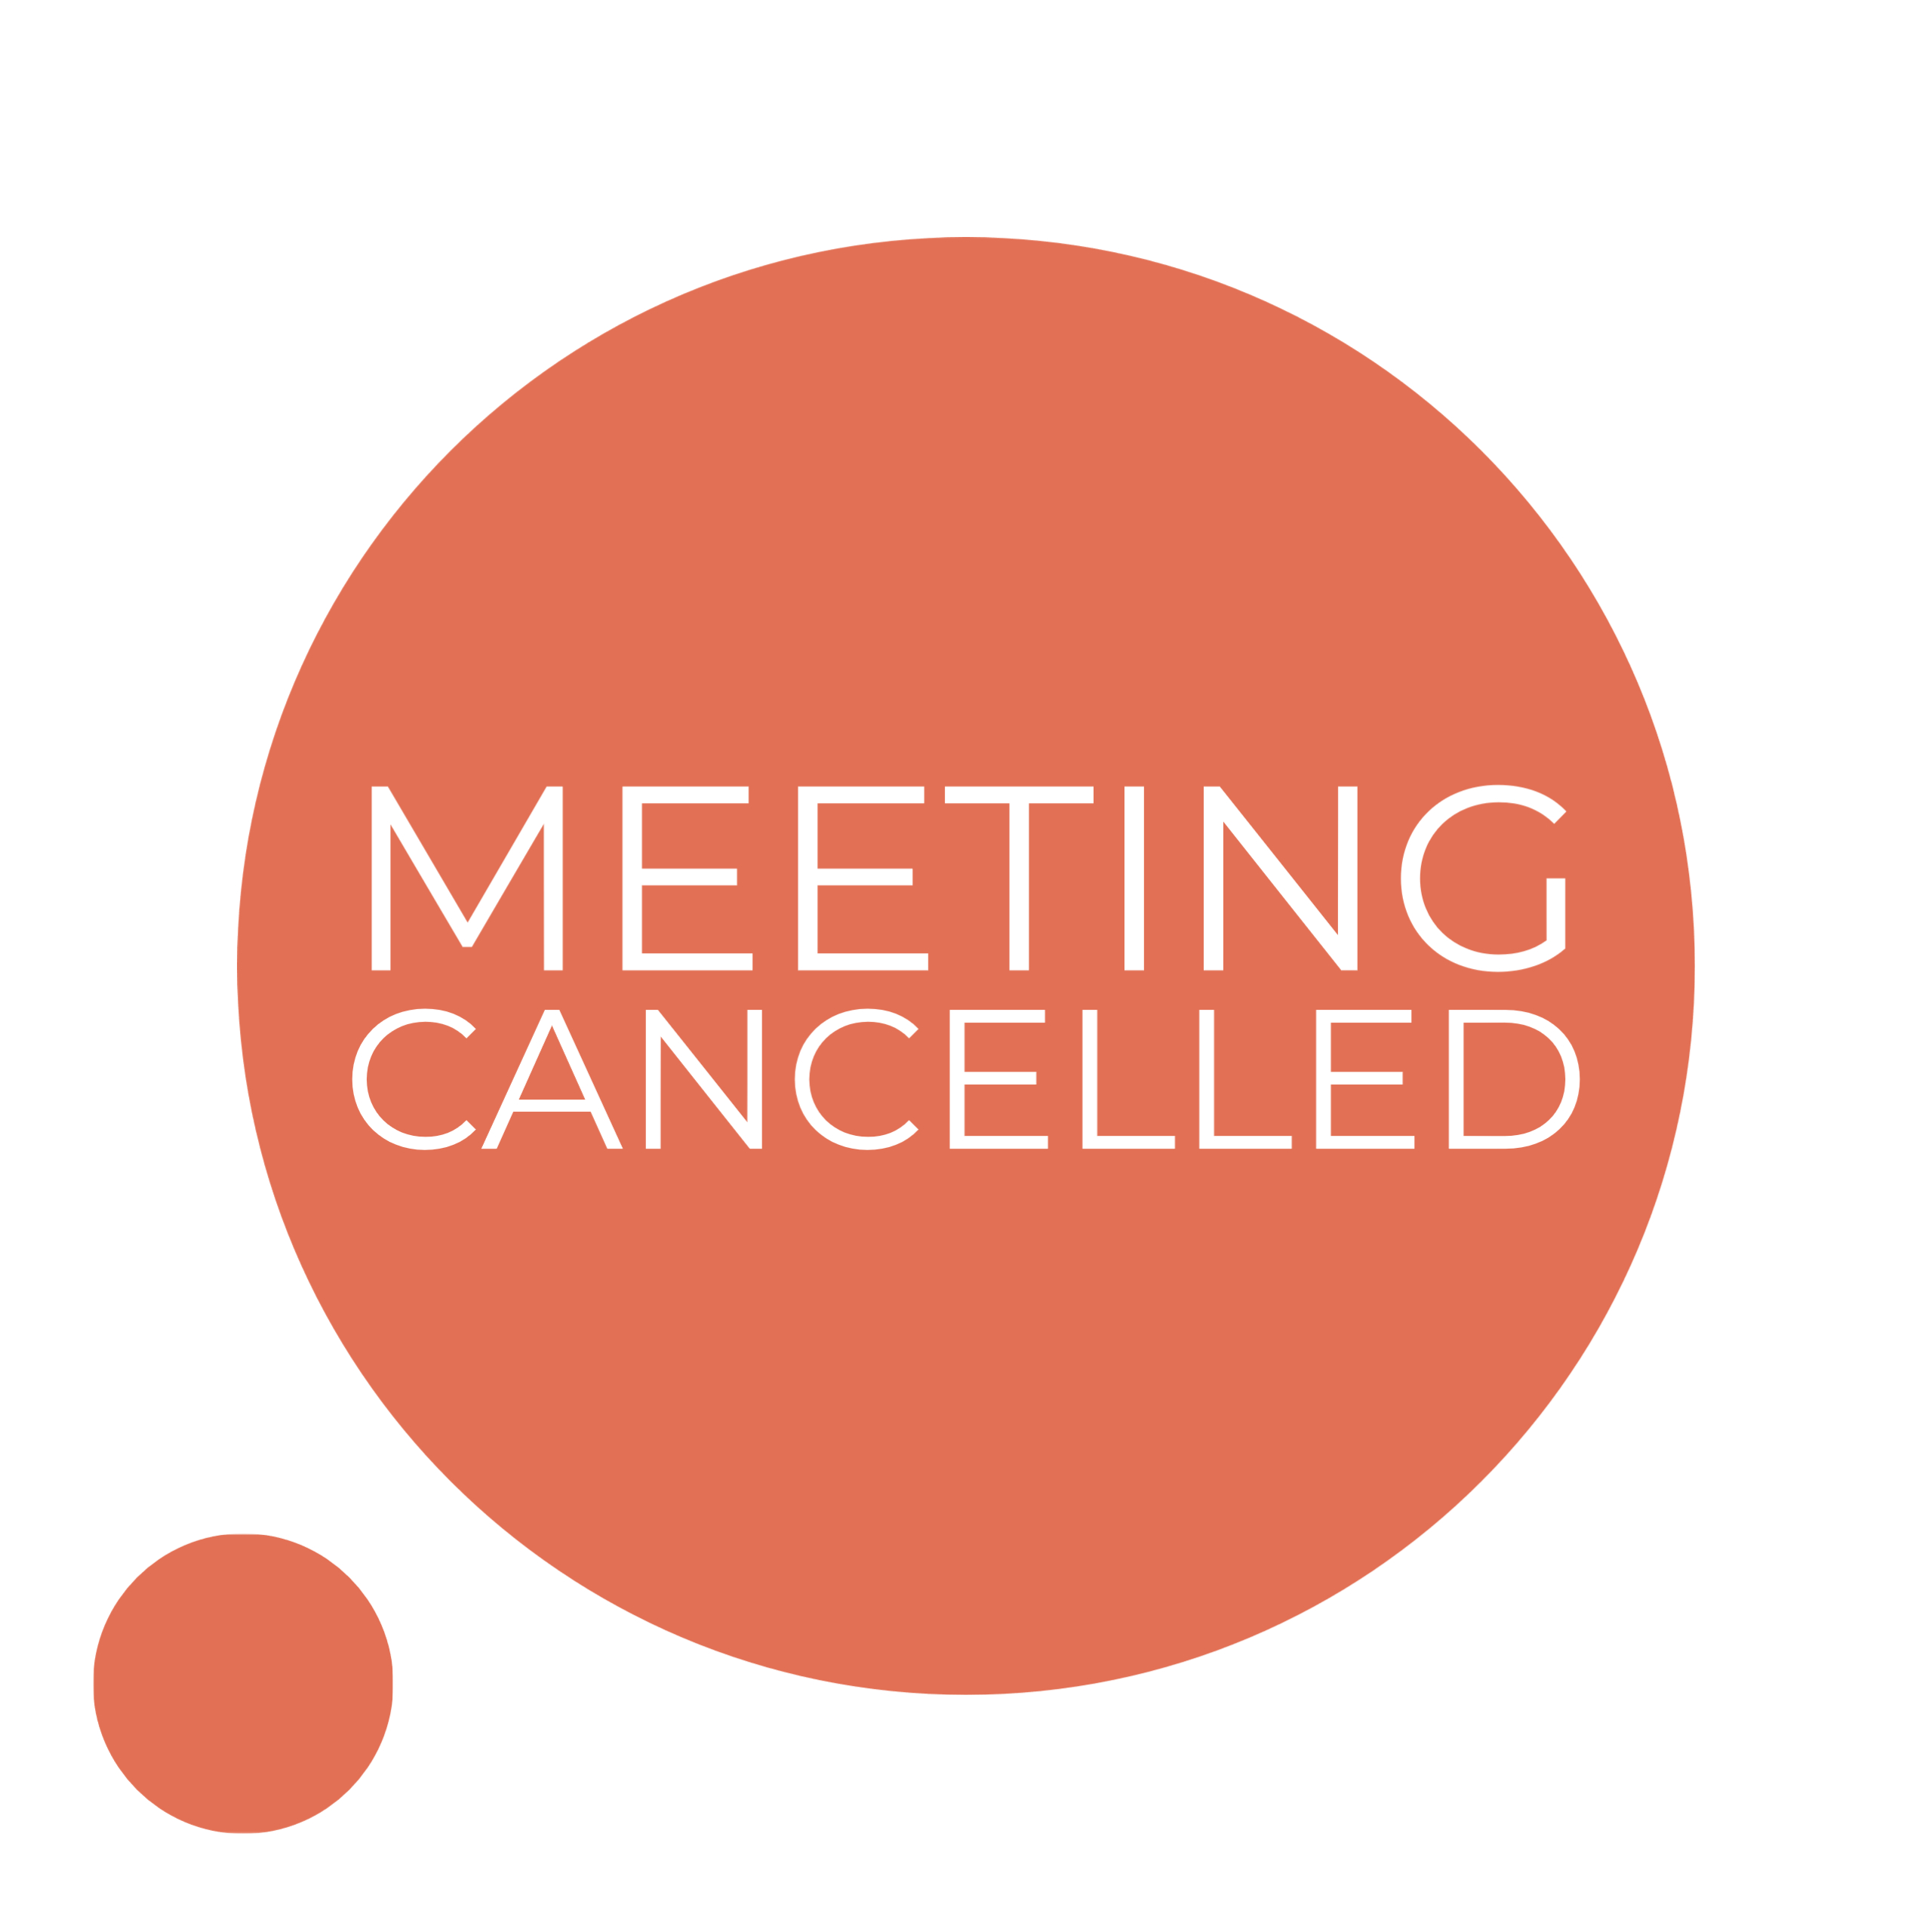 April Meeting Cancelled